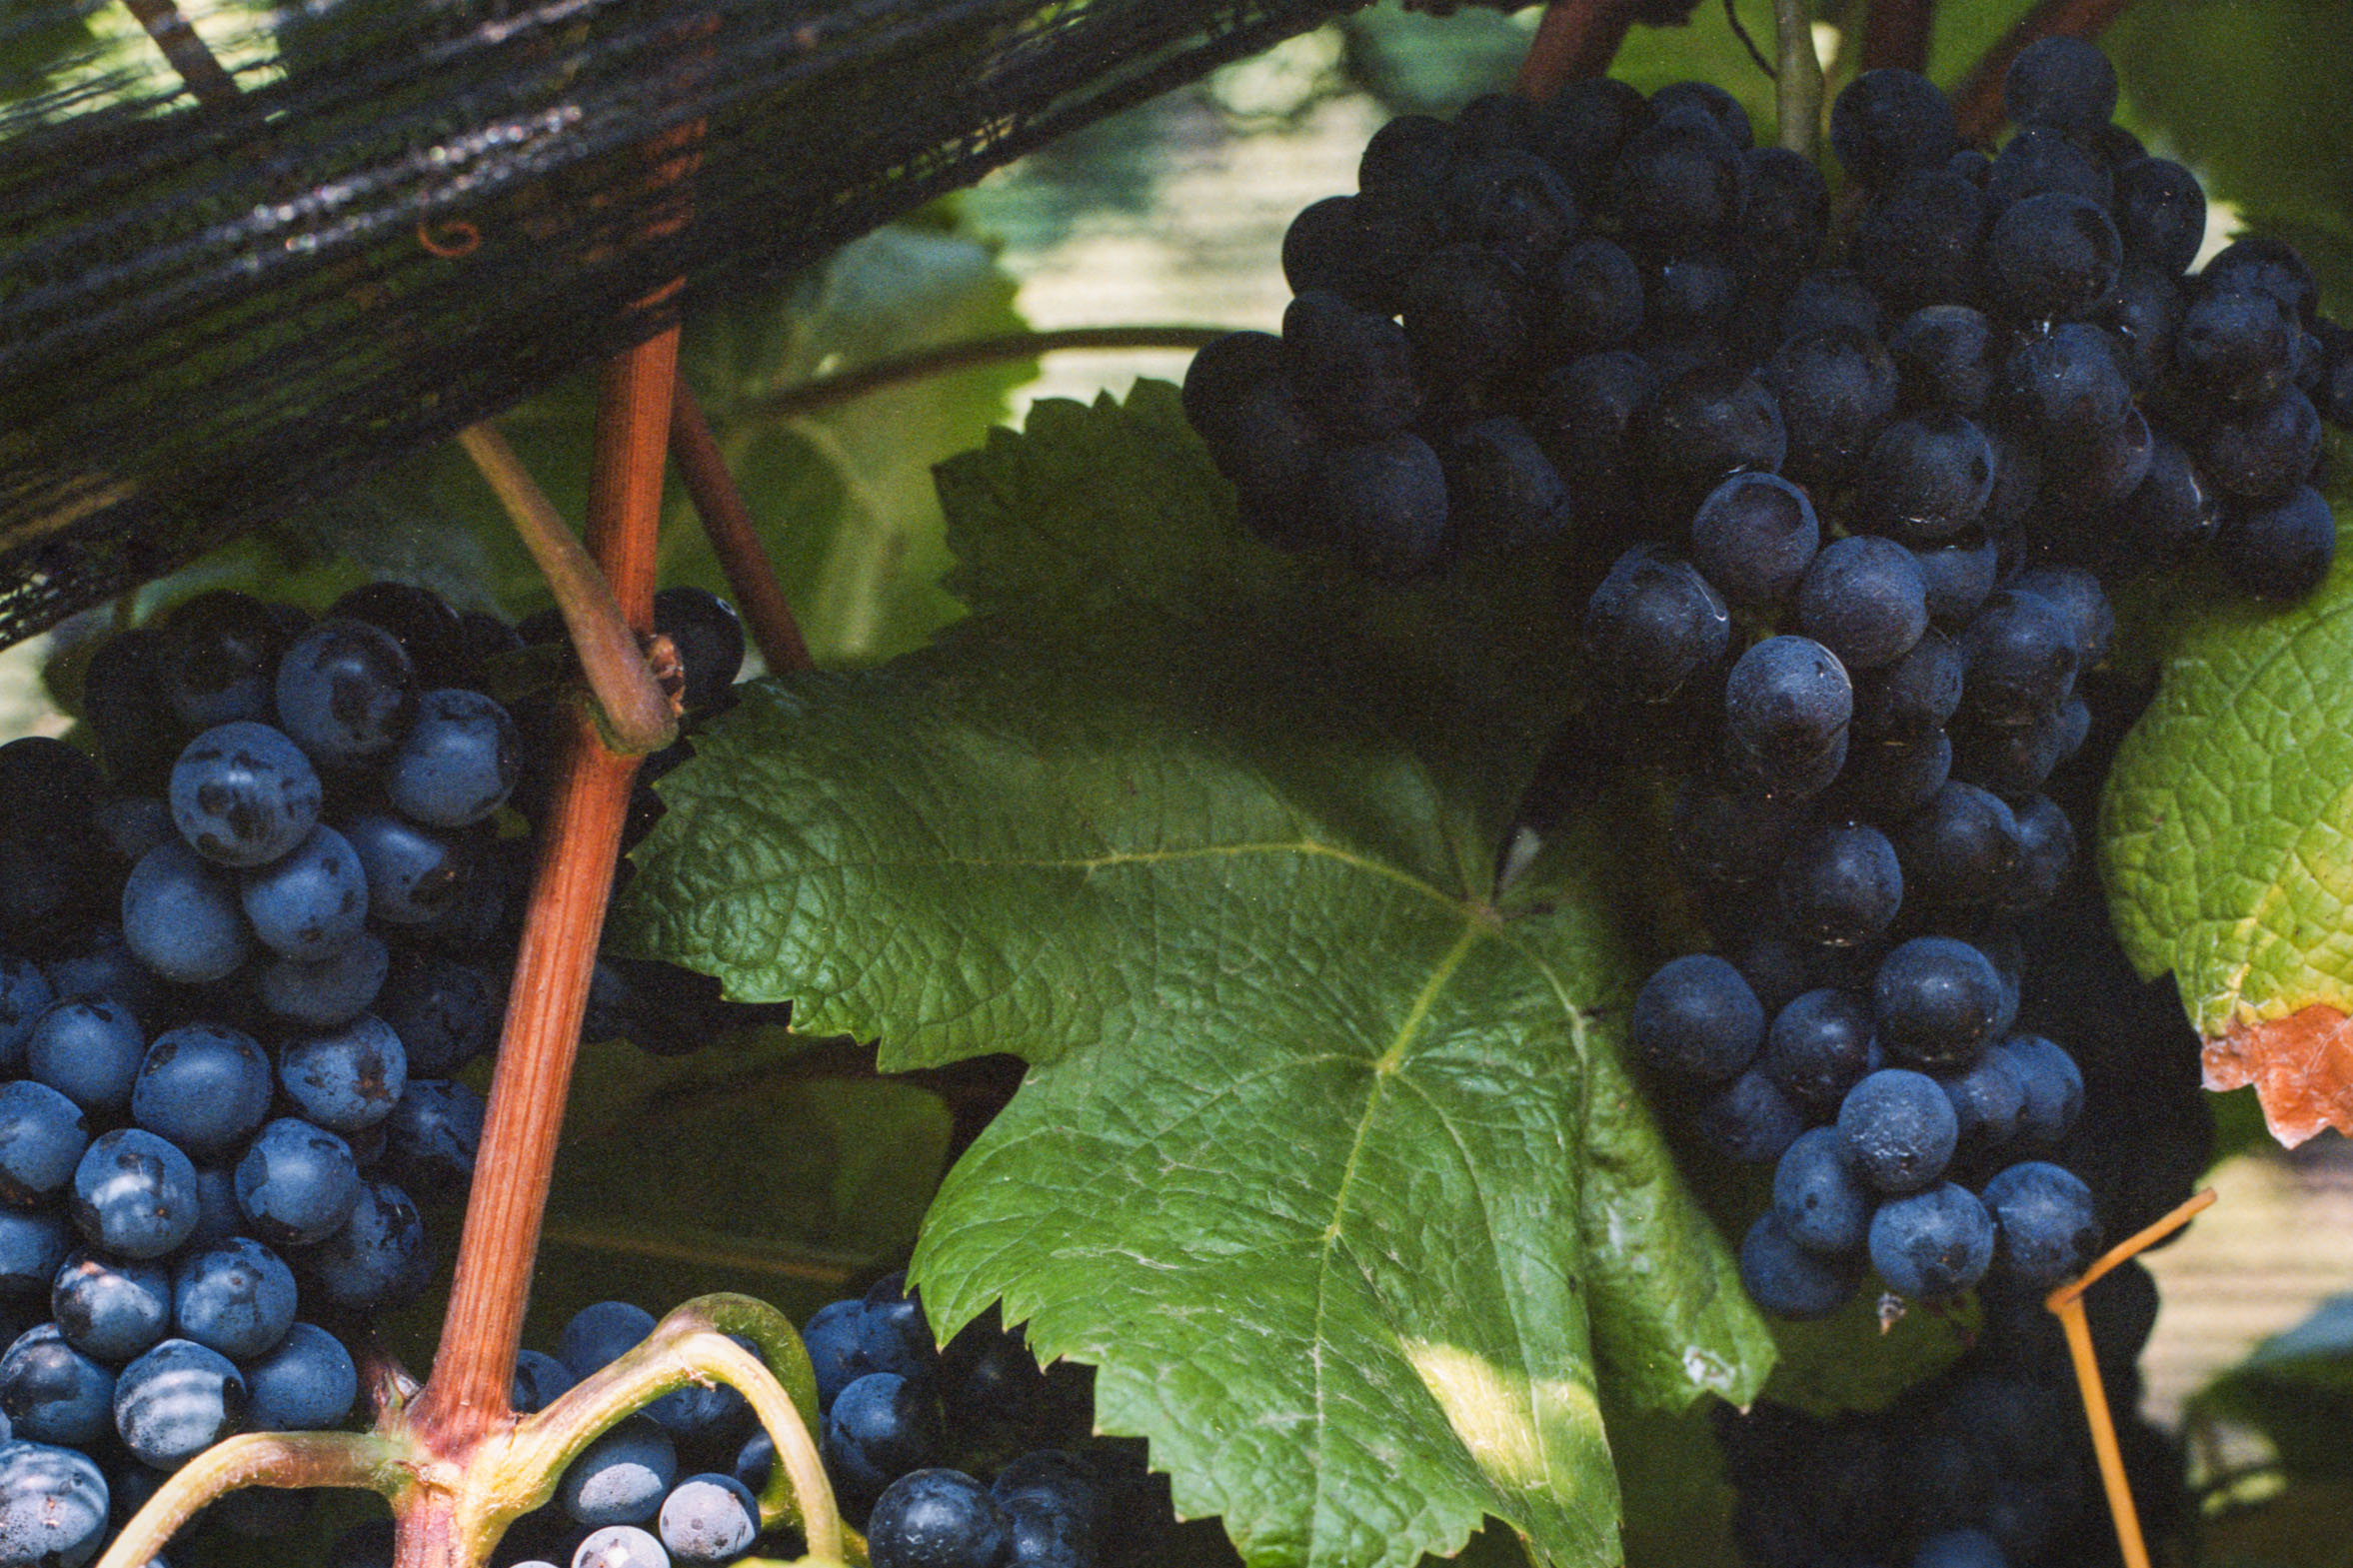 Purple grapes on the stem with big green leaves.